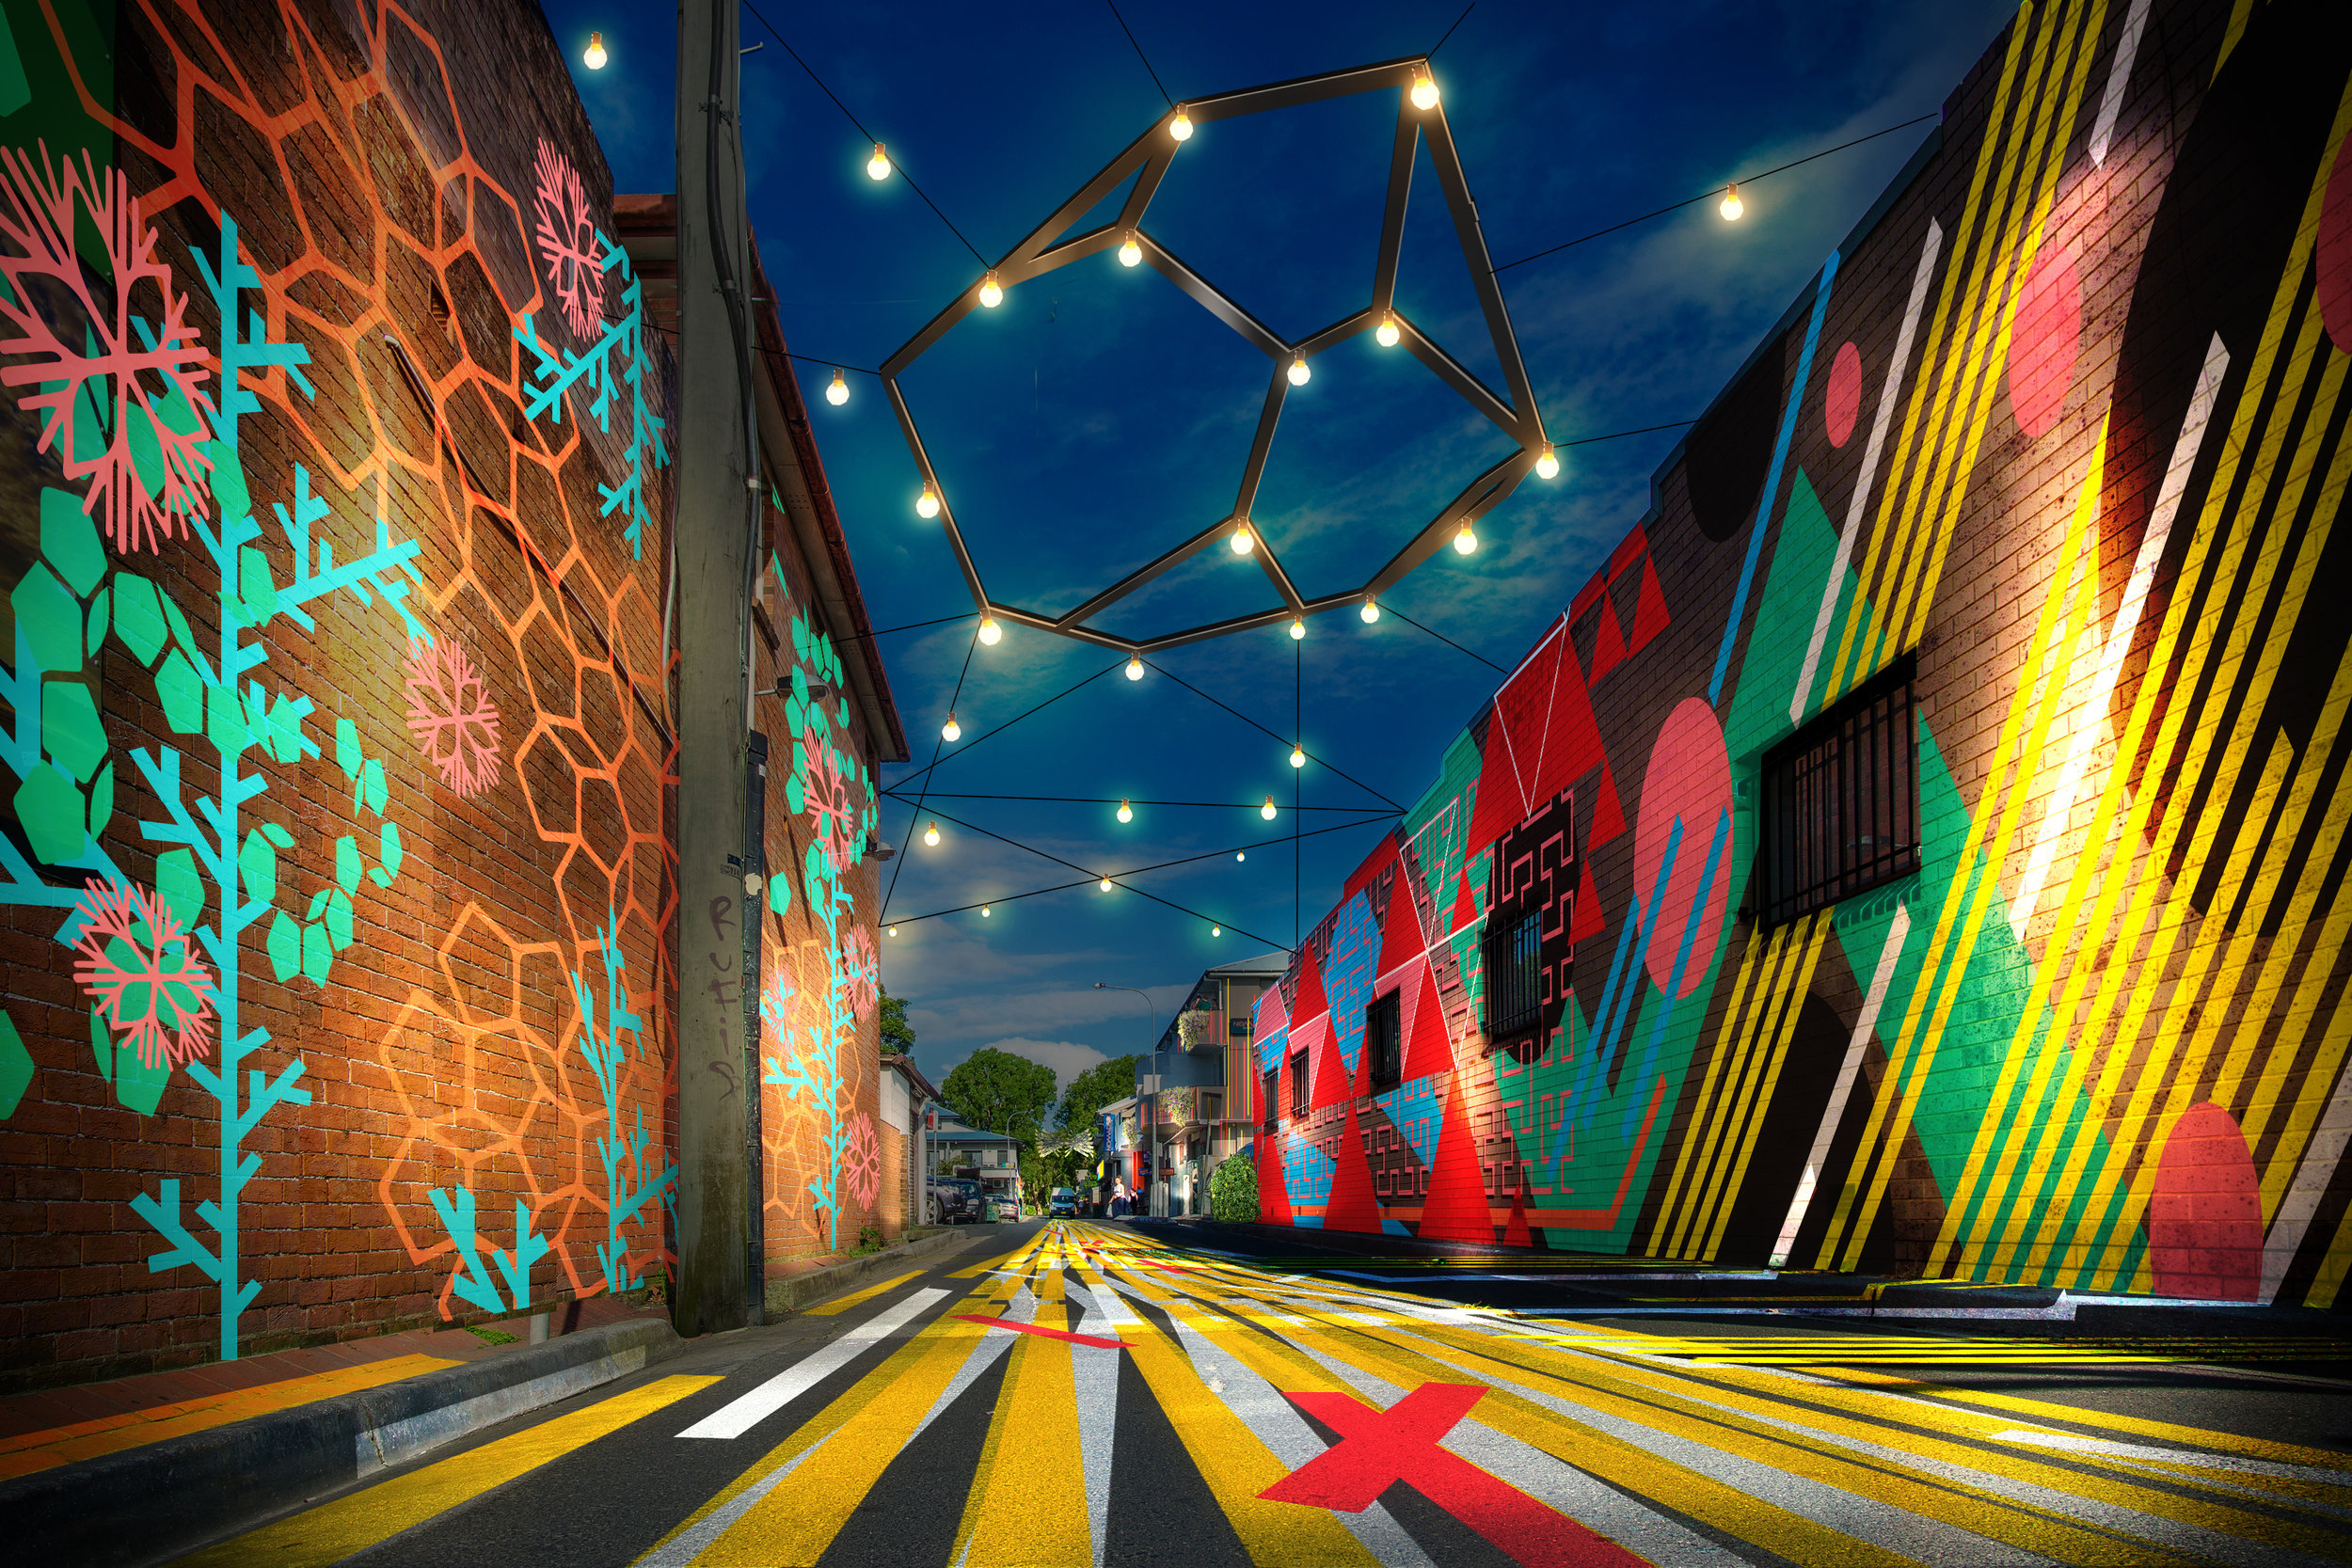 project: Elysium   Permanent transformation of Lawson lane byron bay  company creative road   role: project manager